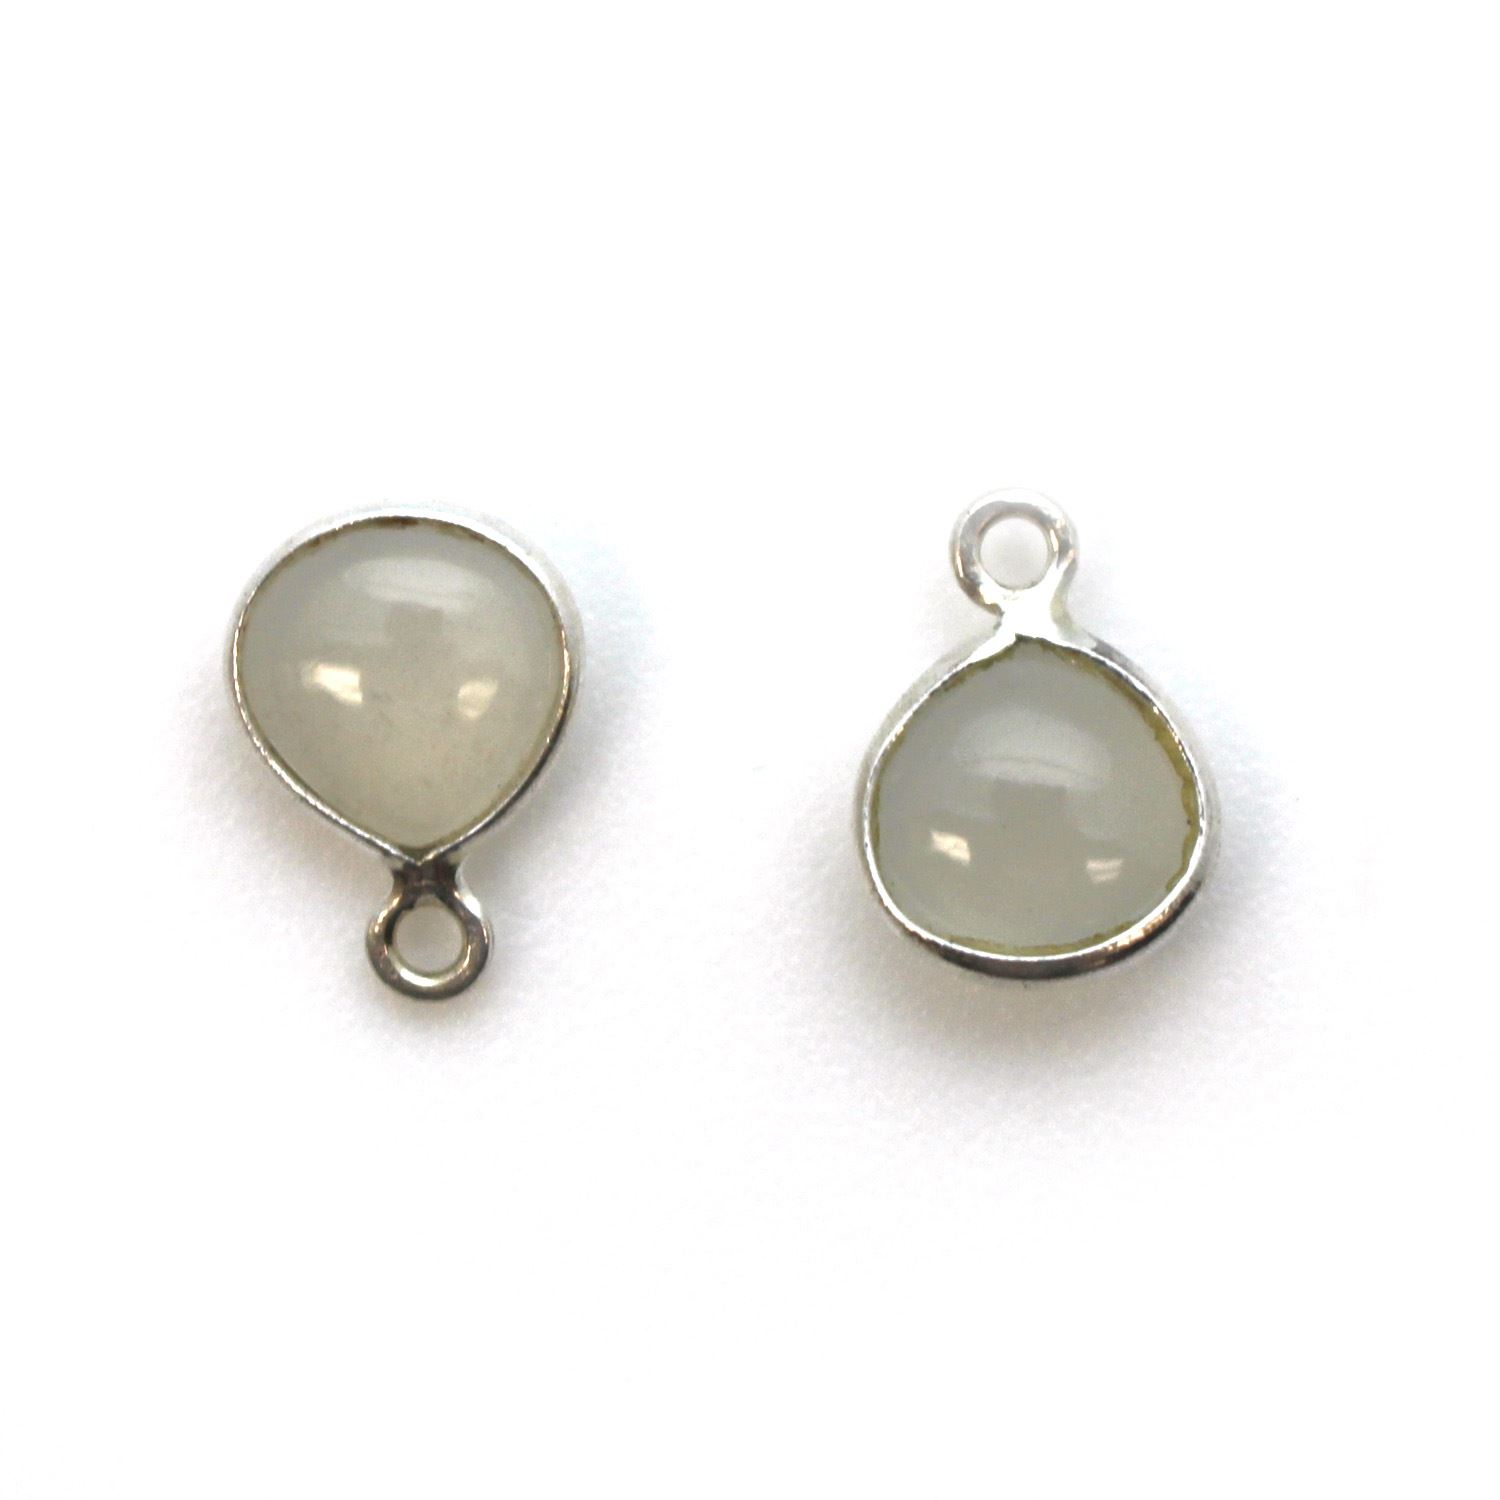 Bezel Charm Pendant - Sterling Silver Charm - Natural Moonstone - Tiny Heart Shape -7mm